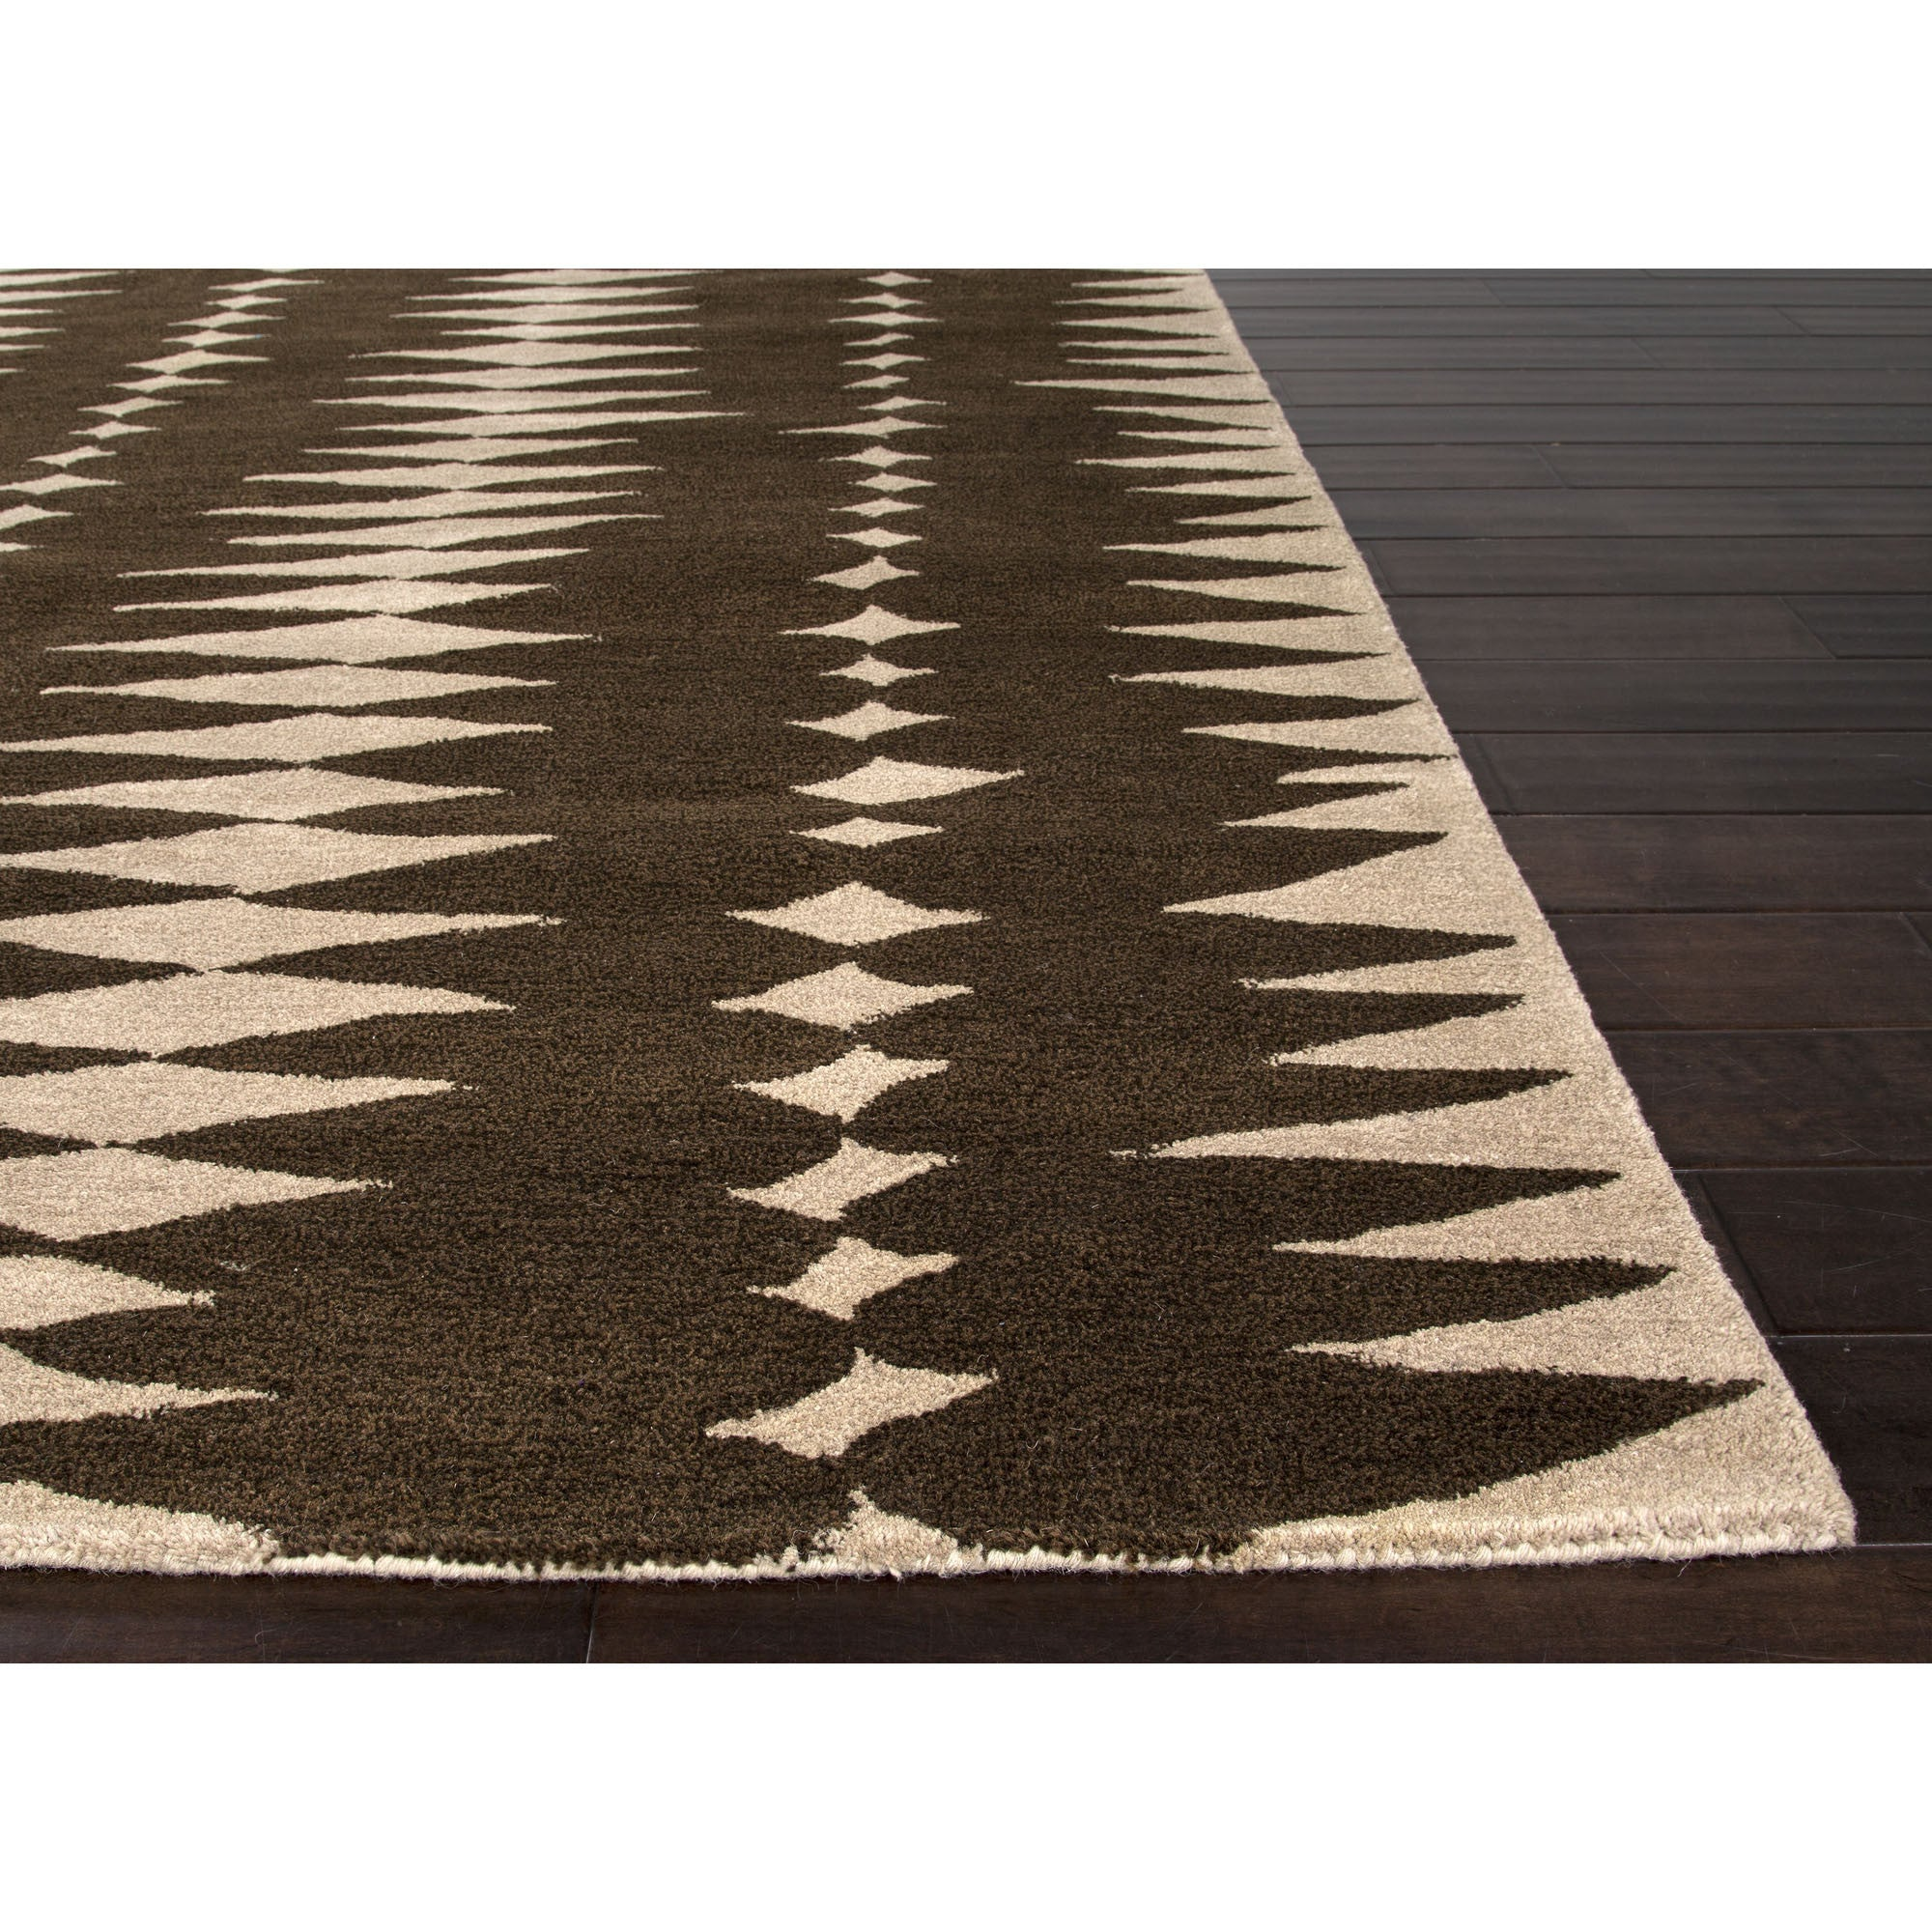 Jaipur rugs modern geometric pattern brown ivory wool area for Modern wool area rugs